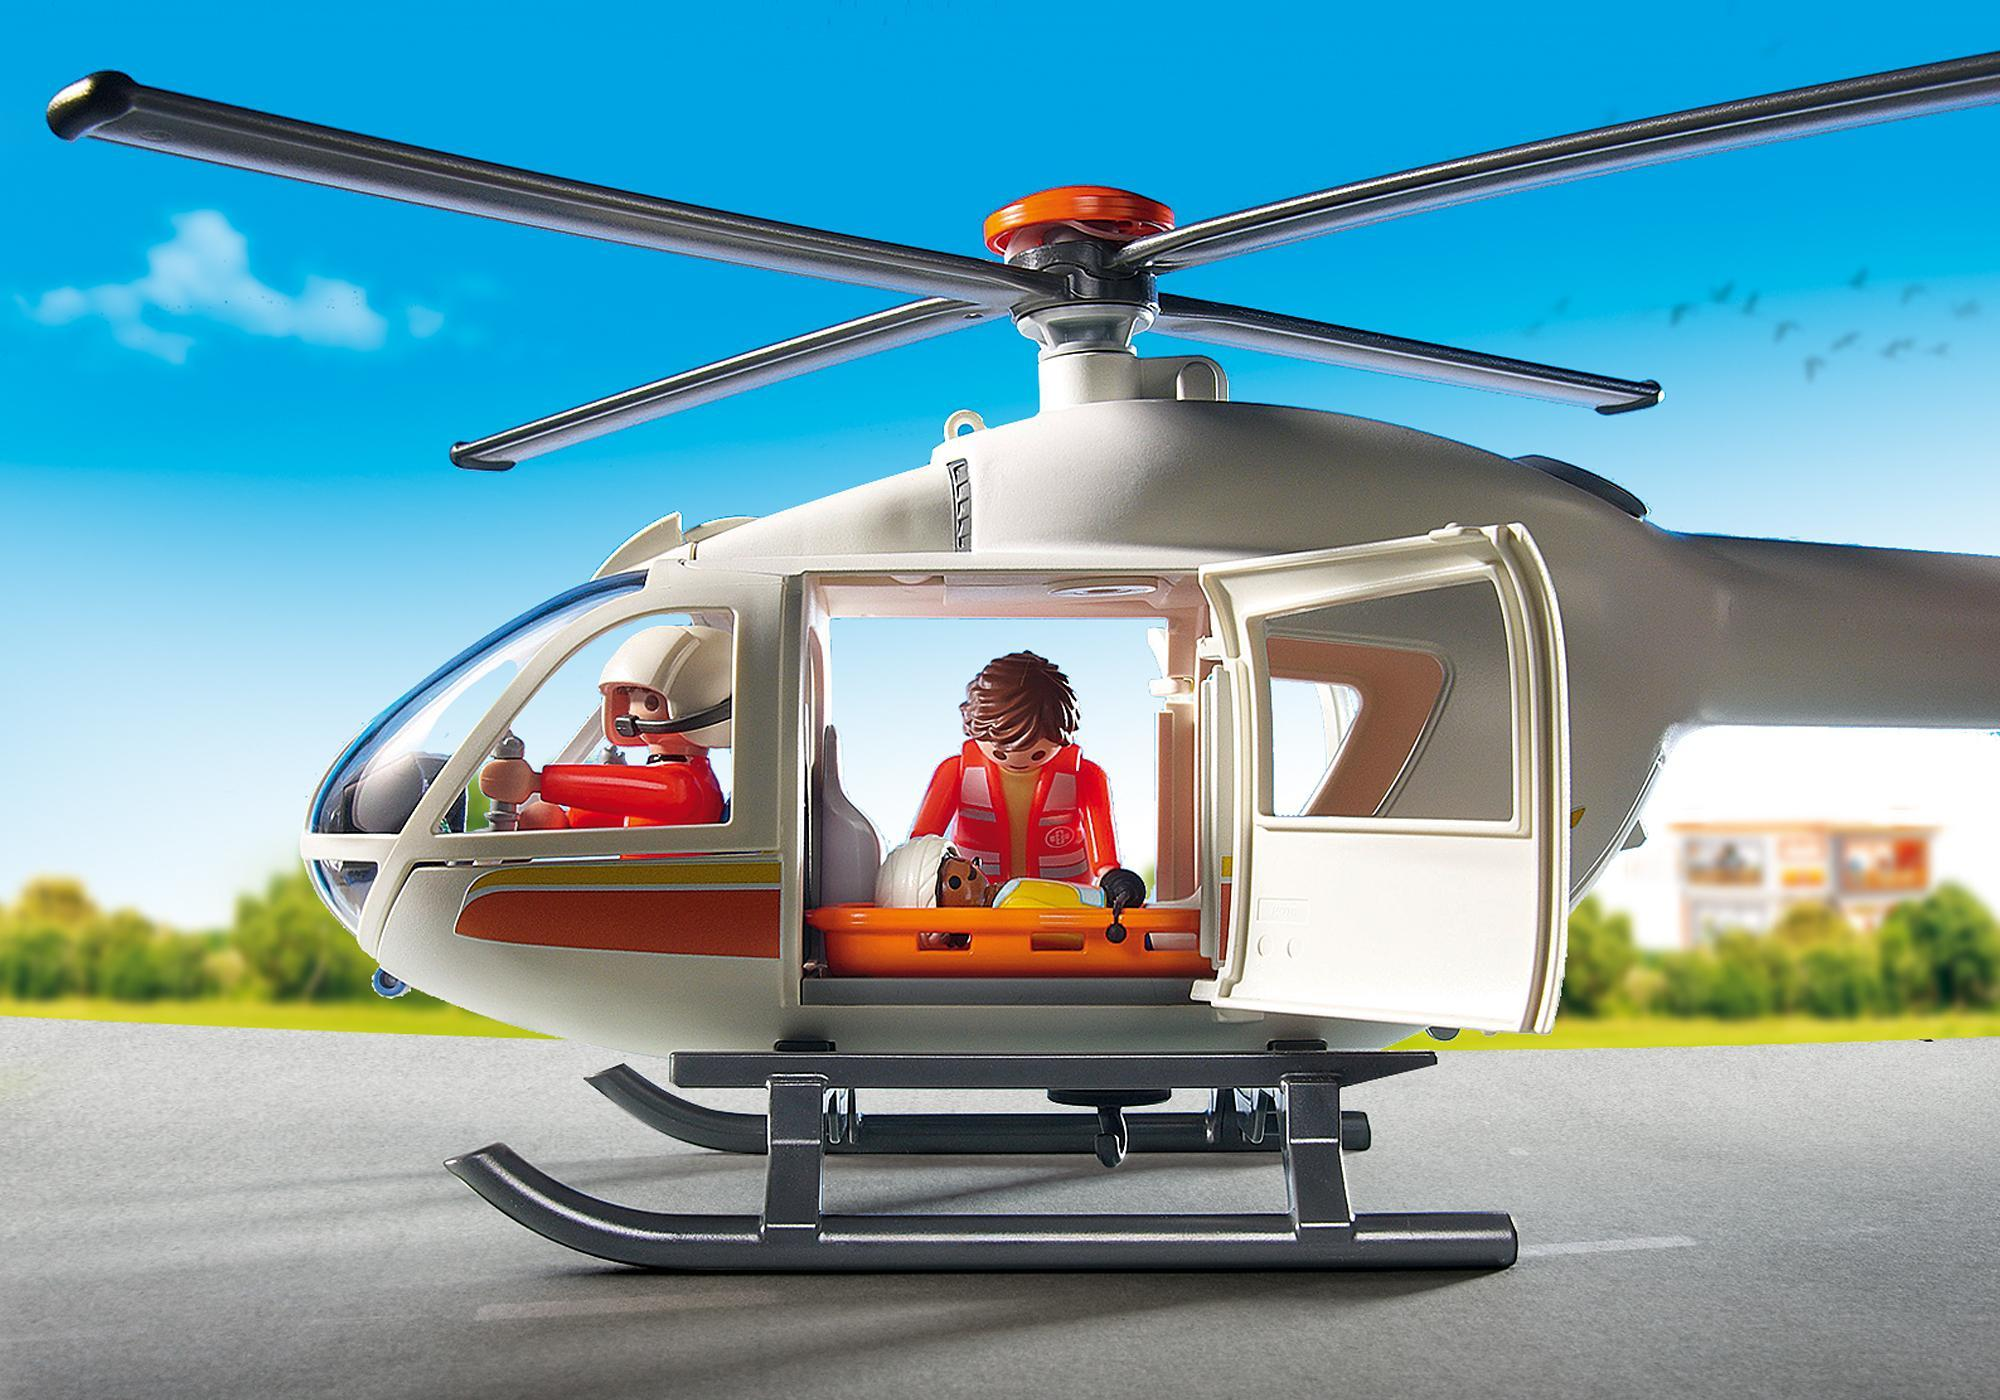 http://media.playmobil.com/i/playmobil/6686_product_extra3/Emergency Medical Helicopter